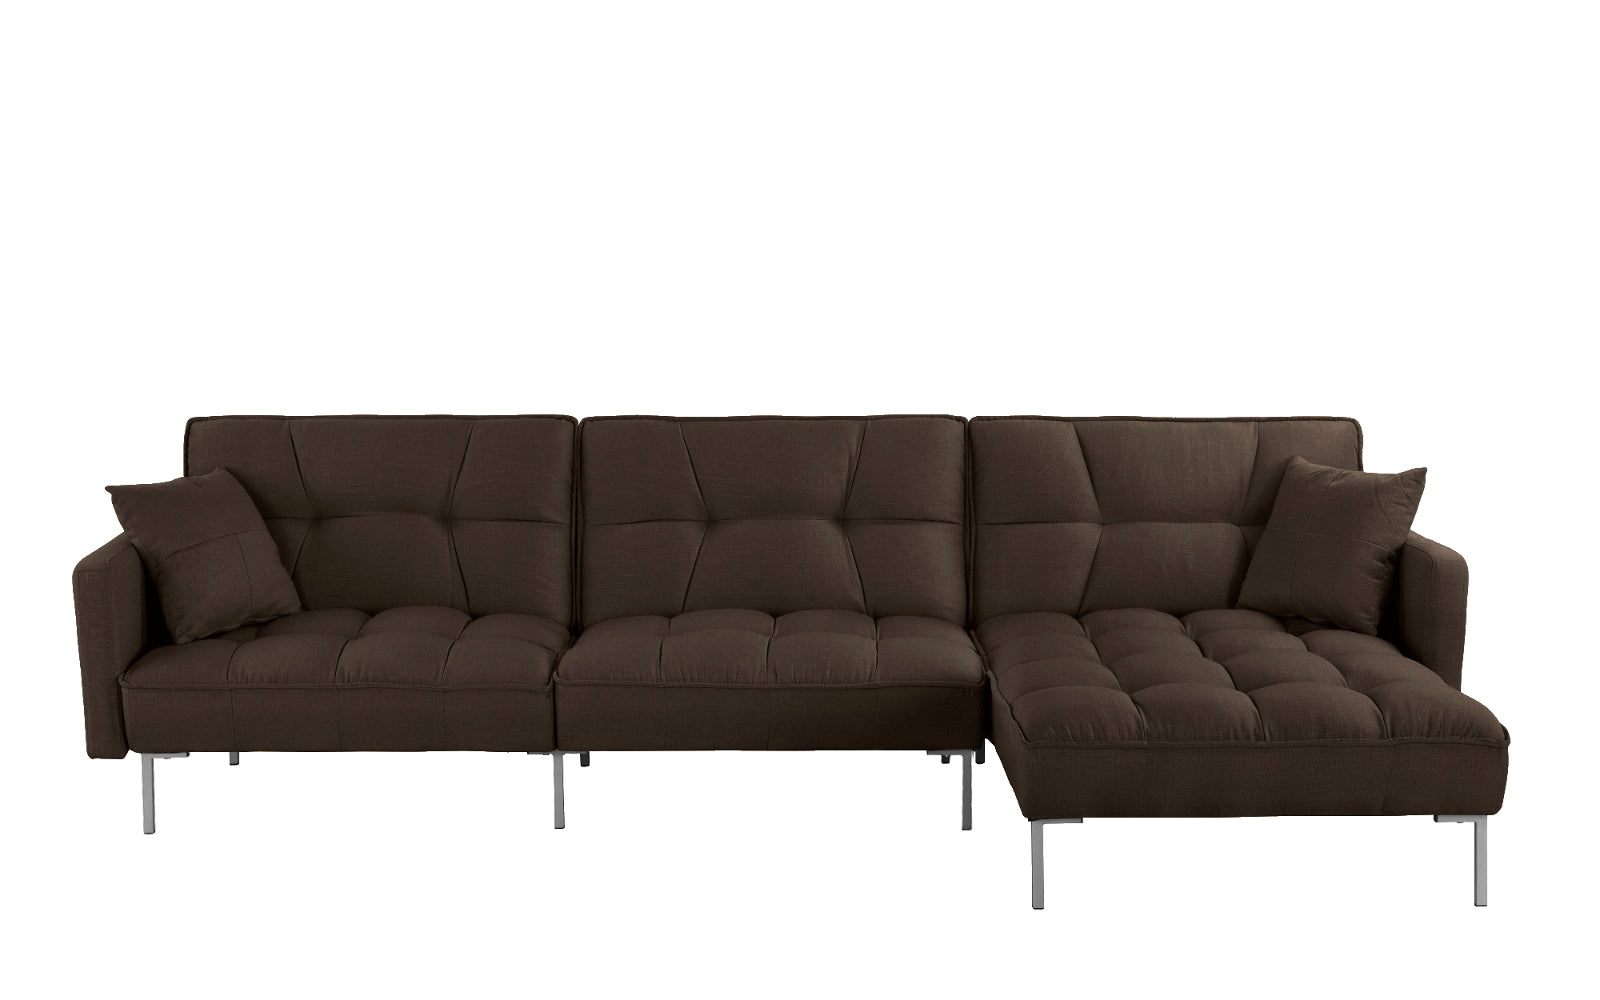 Swell Futon Sofamania Alphanode Cool Chair Designs And Ideas Alphanodeonline